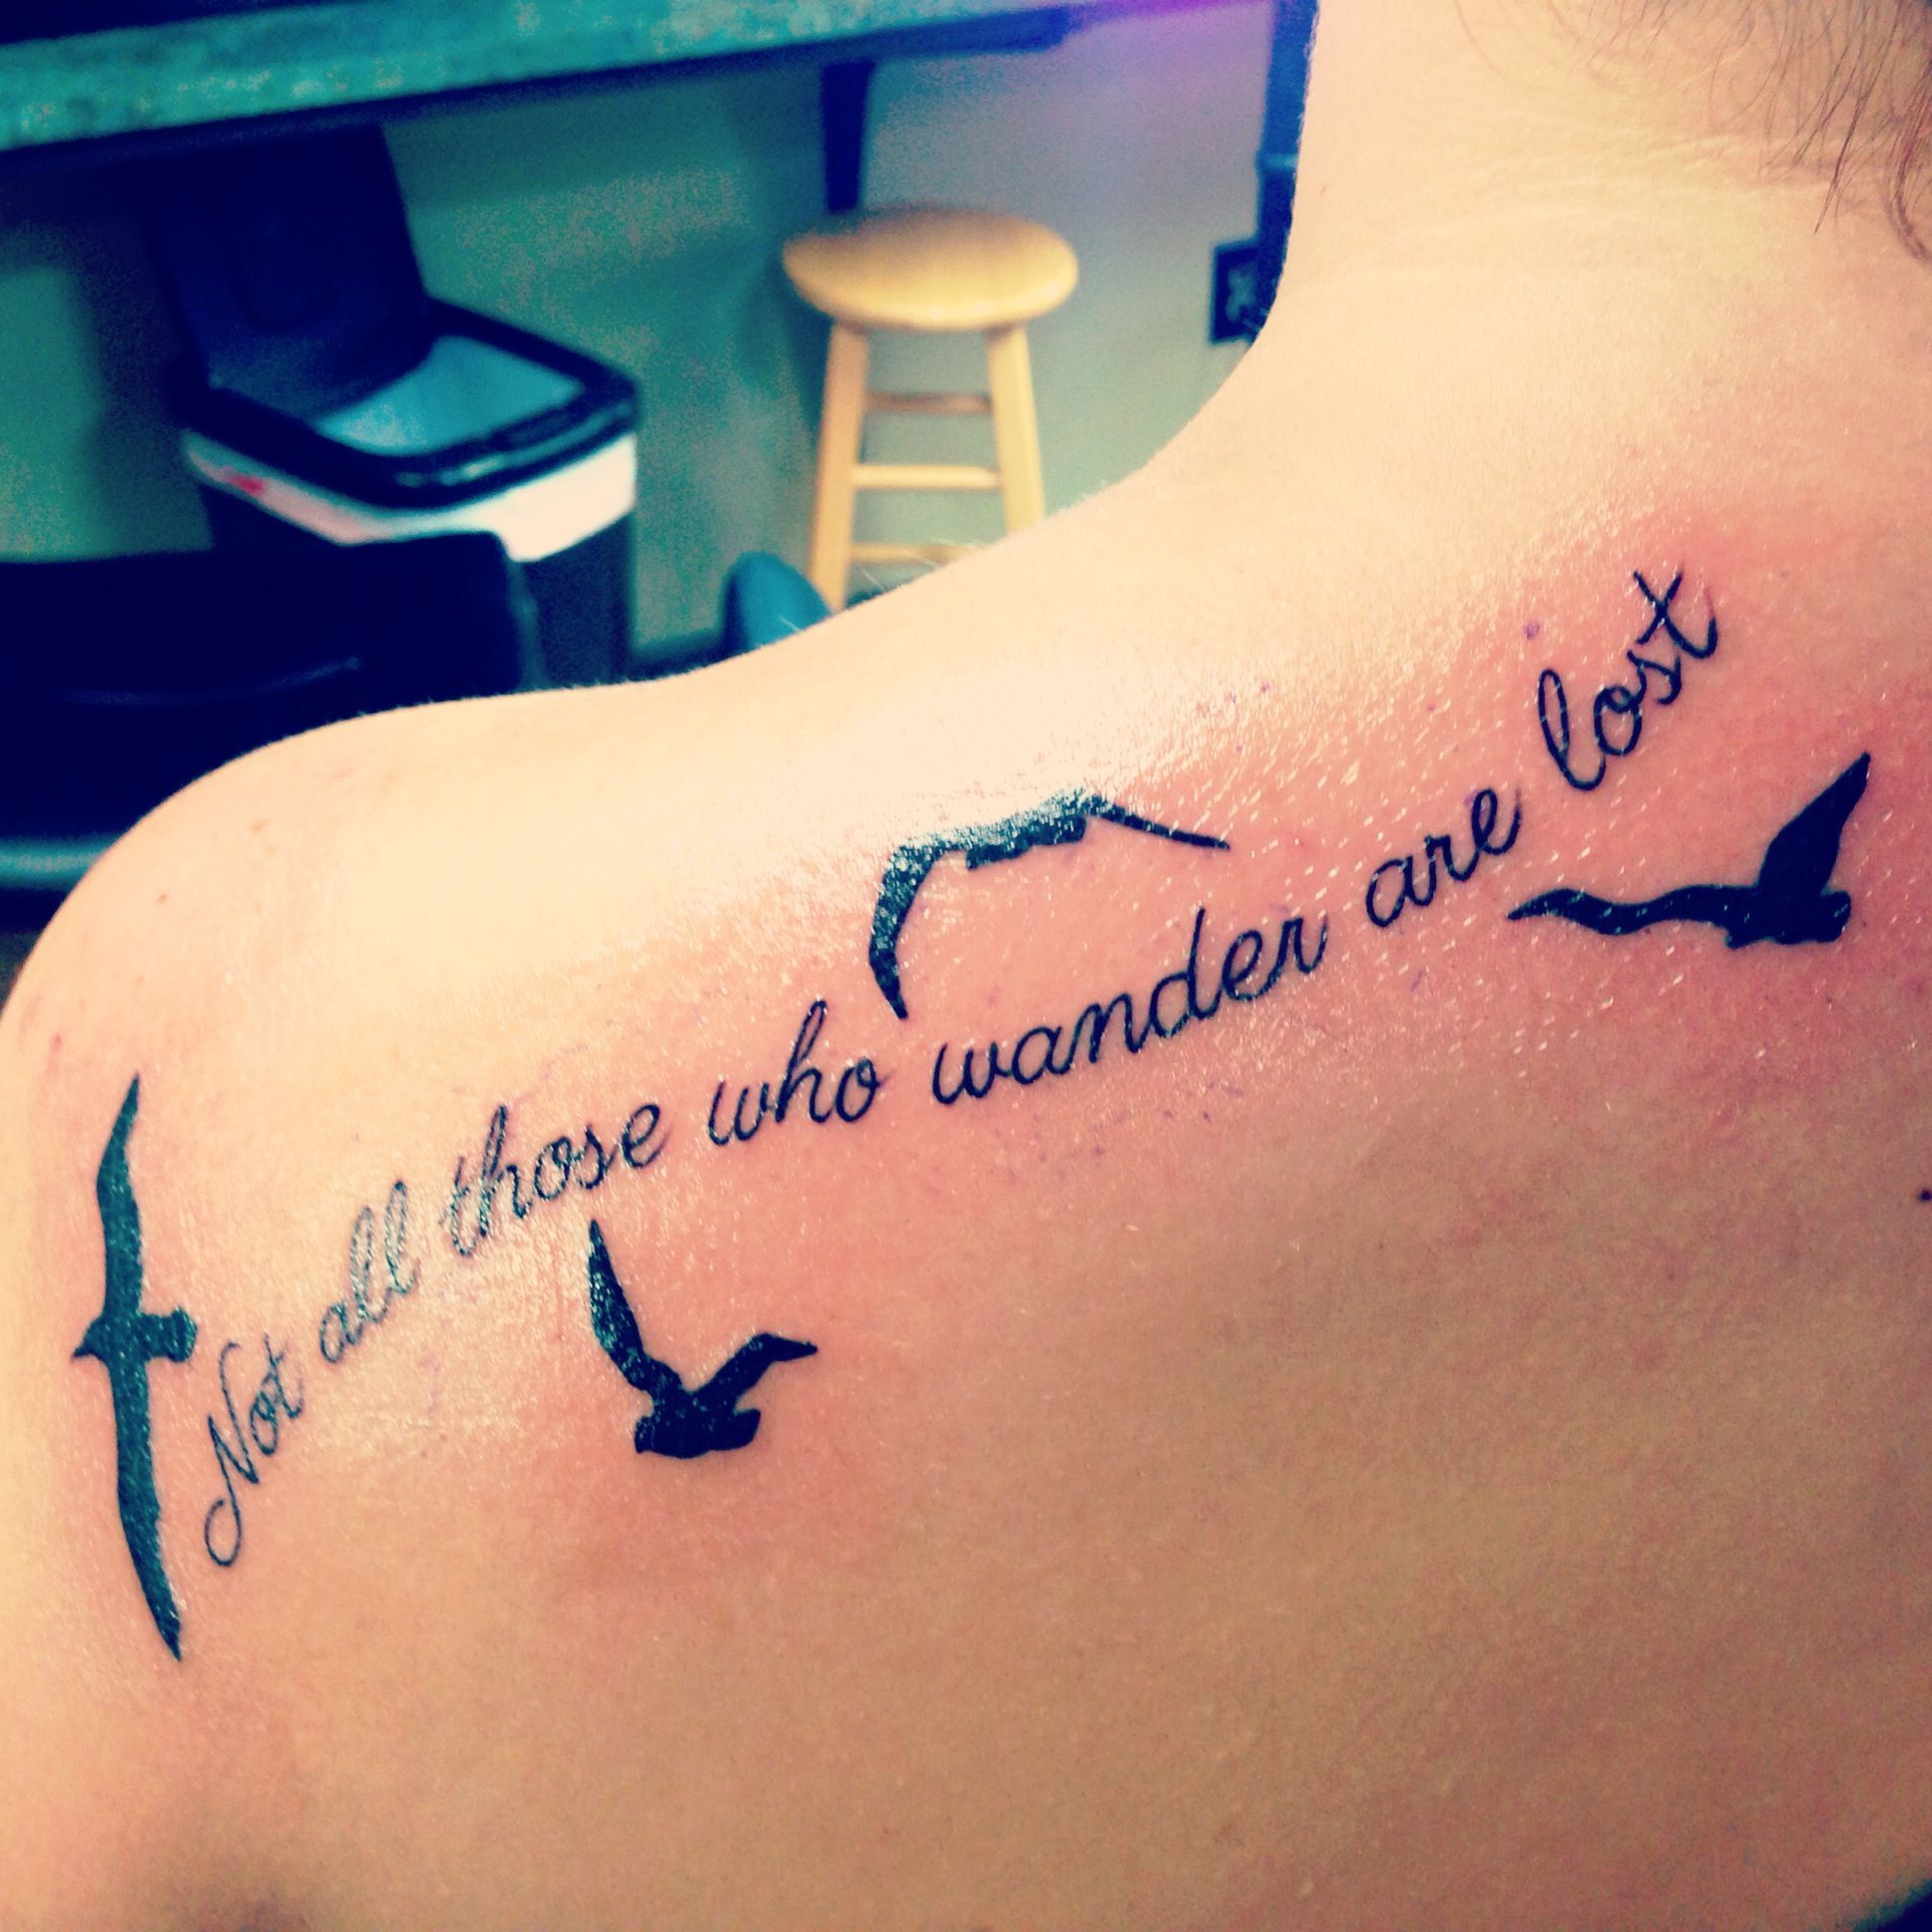 Not All Those Who Wander Are Lost Tattoo Foot My Newest Tattoo Not All Those Who Wander Are Lost Quote From The Hobbit With Silhouettes Of Sea Birds Albatrosses The Great Wande Tatoo Tatuaggi Papere